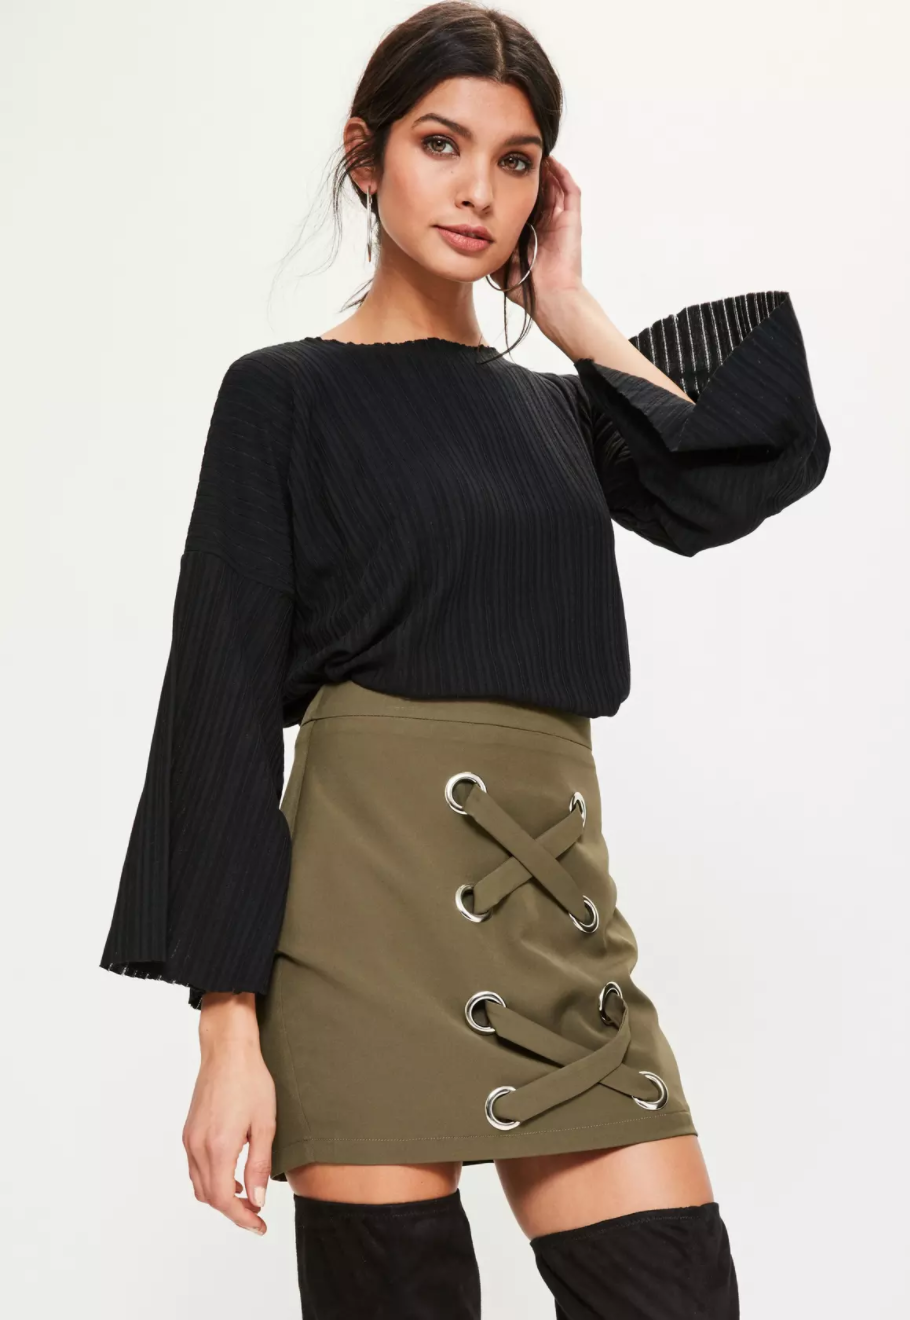 From petite dresses to petite colored jeans and everything in between we have all the petite women's clothing your closet has been asking for. You'll find petite clothes in the perfect silhouette for any figure whether it's a pair of petite skinny jeans or a petite fit-and-flare dress.